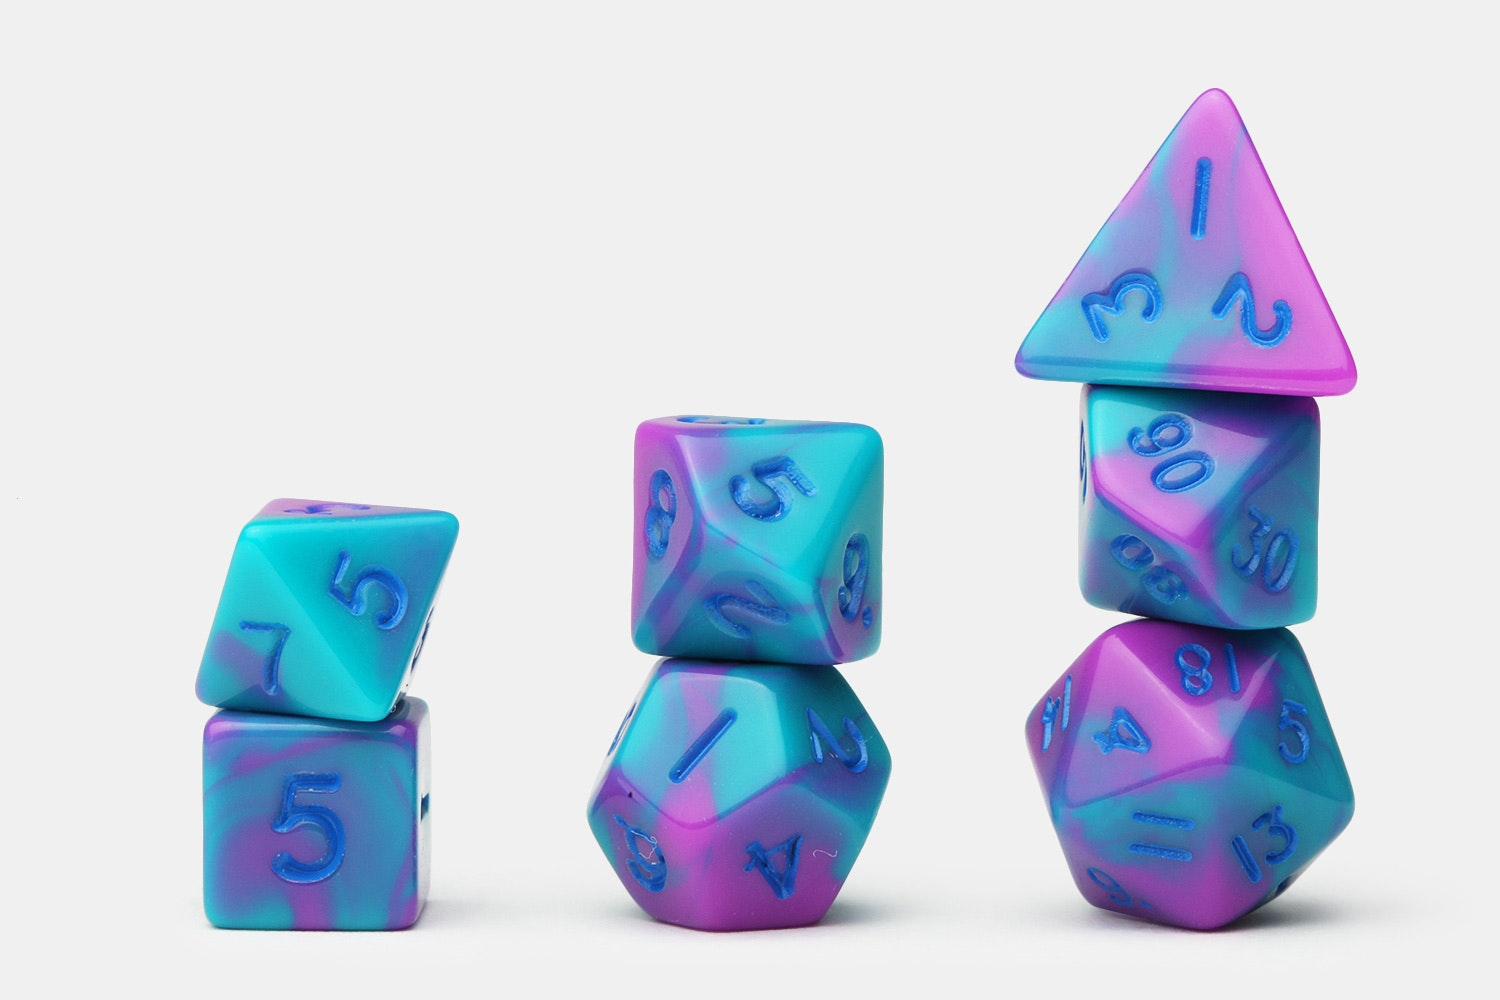 Marbled Purple/Green w/ Blue Numbers